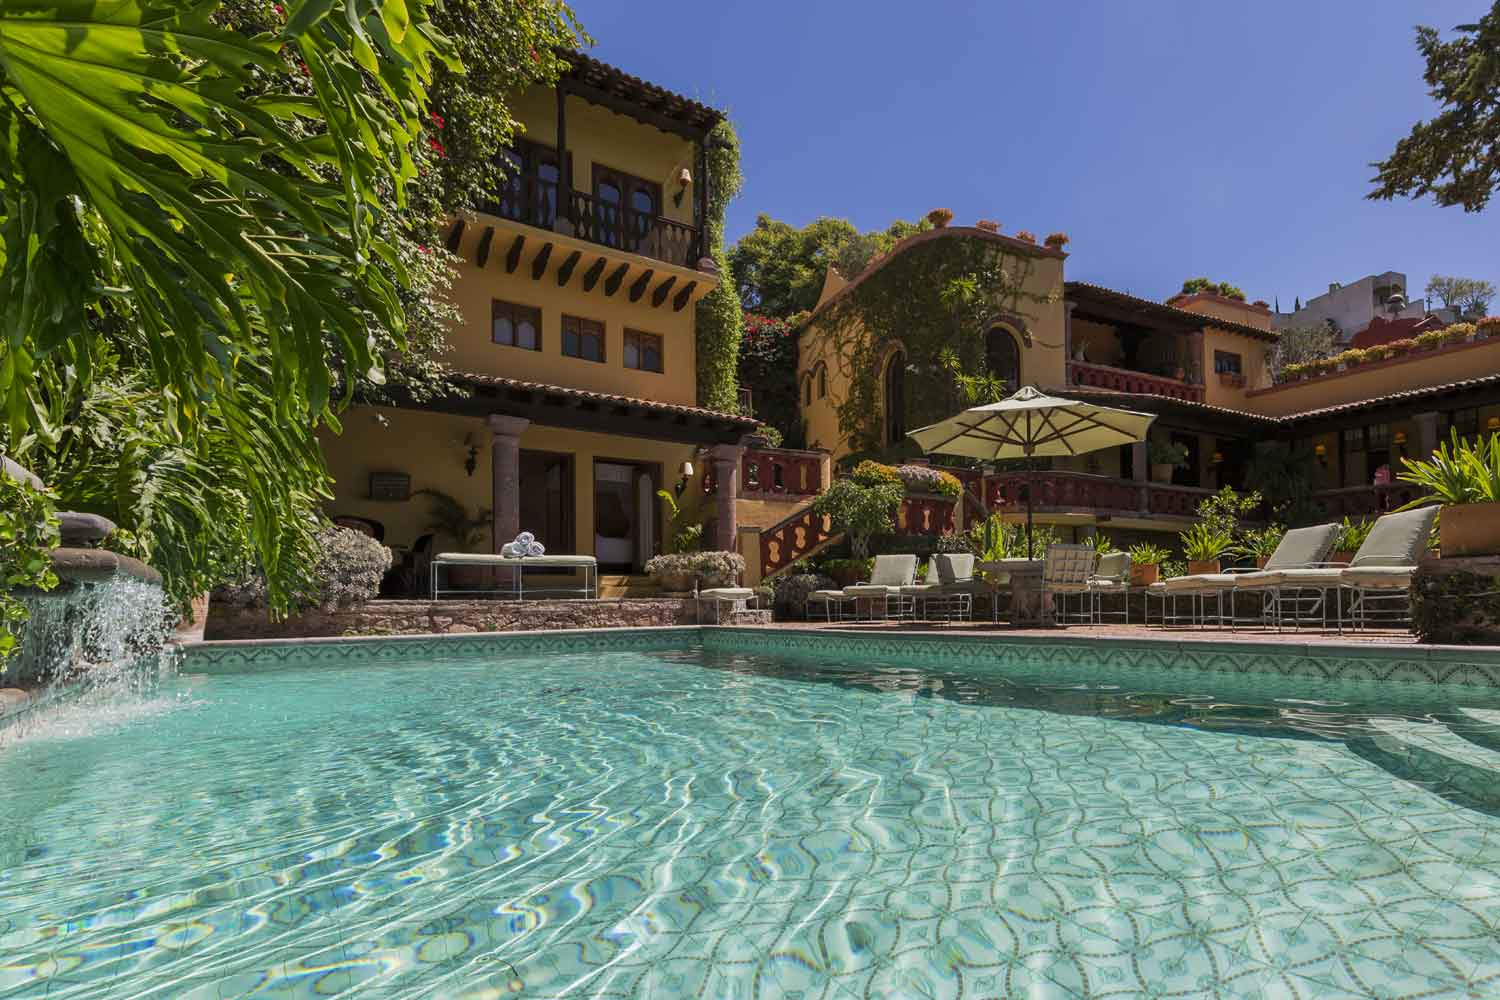 <b>Guanajuato, Mexico</b><br/><i>8 Bedrooms, 9,278 sq. ft.</i><br/>Hacienda-like estate within the walls of its own park